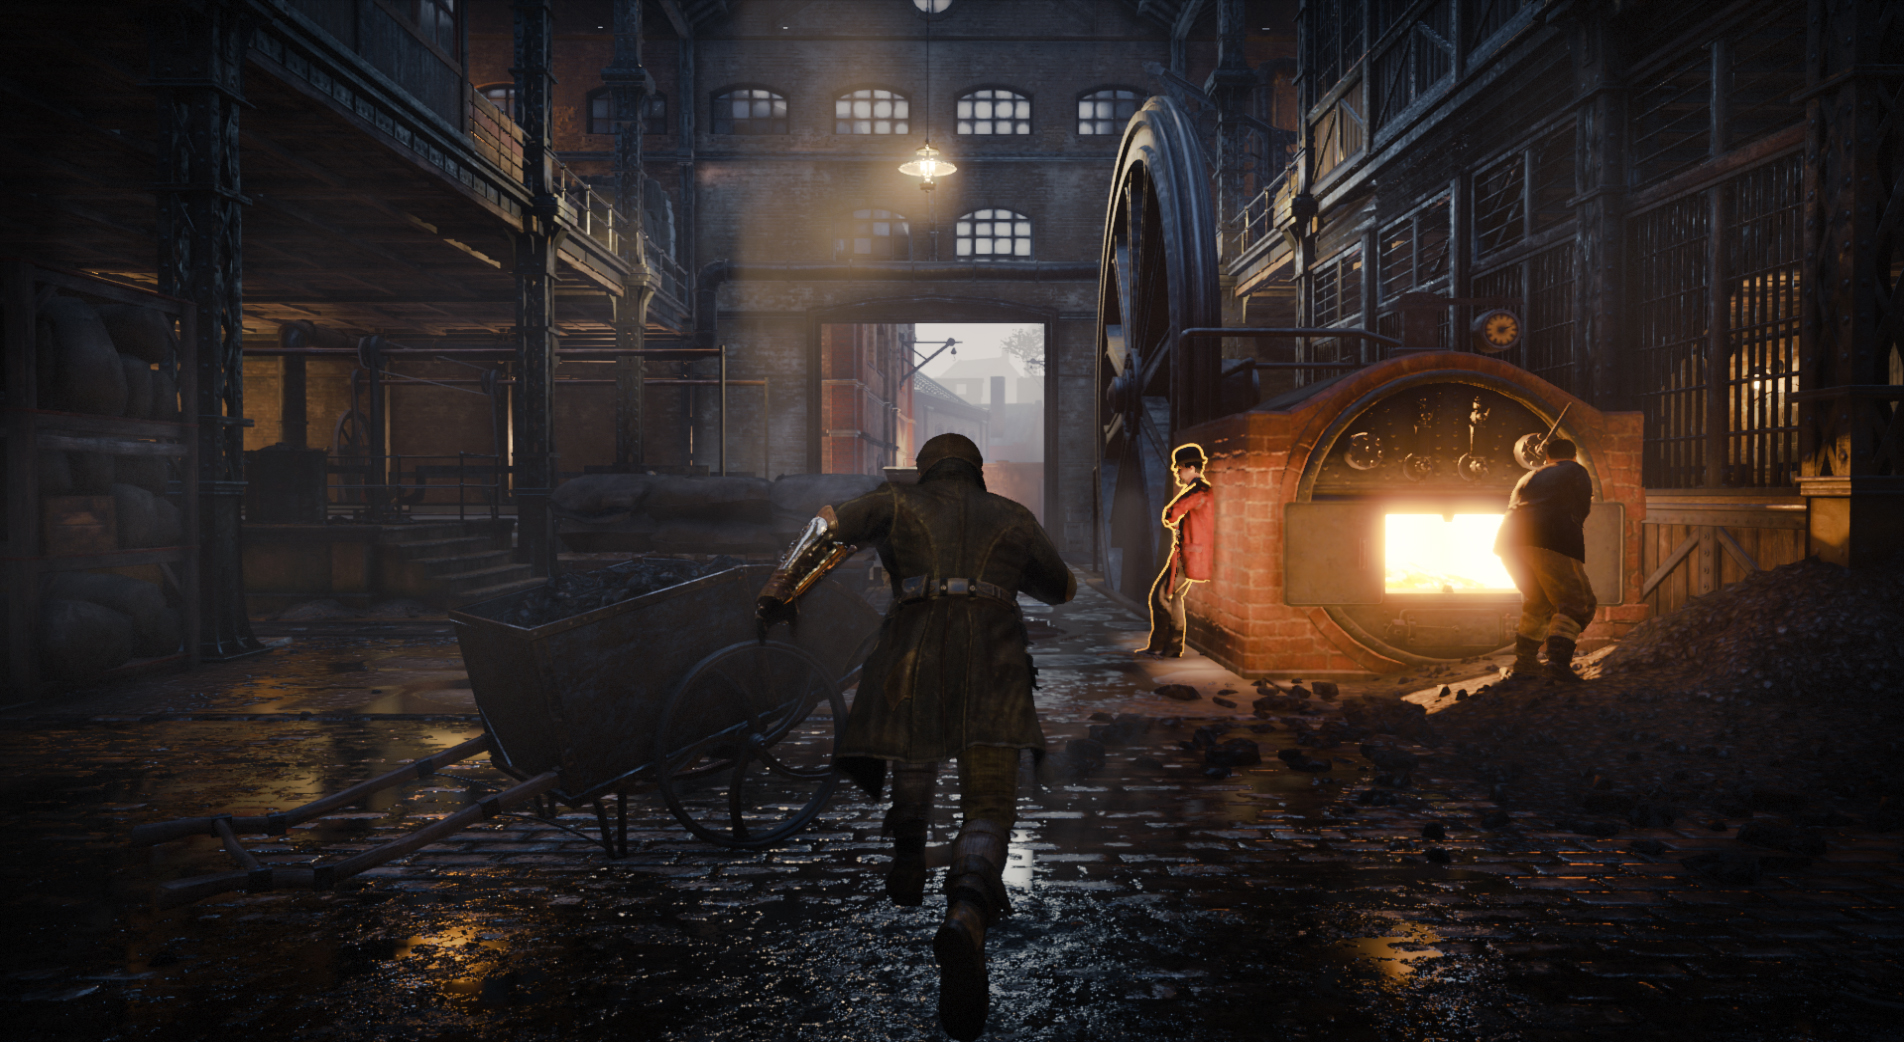 download assassin's creed syndicate gold edition v1.51 + all dlcs repack - fitgirl singlelink iso rar part google drive direct link uptobox ftp link magnet torrent thepiratebay kickass alternative